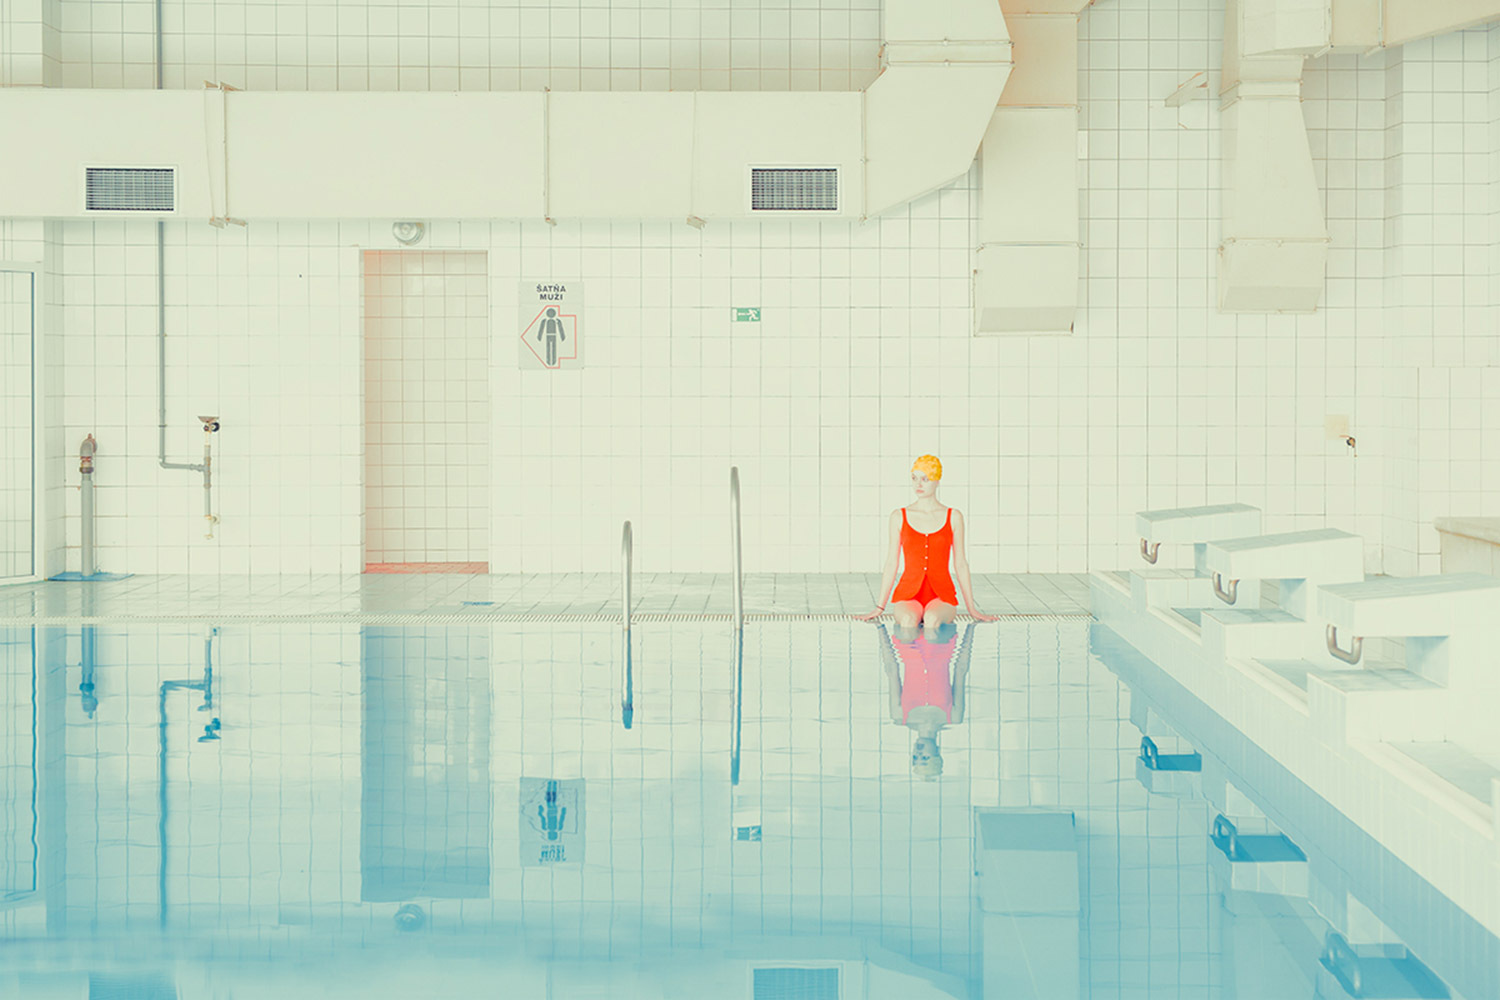 Maria Svarbova - Swimming Pool, sitting alone